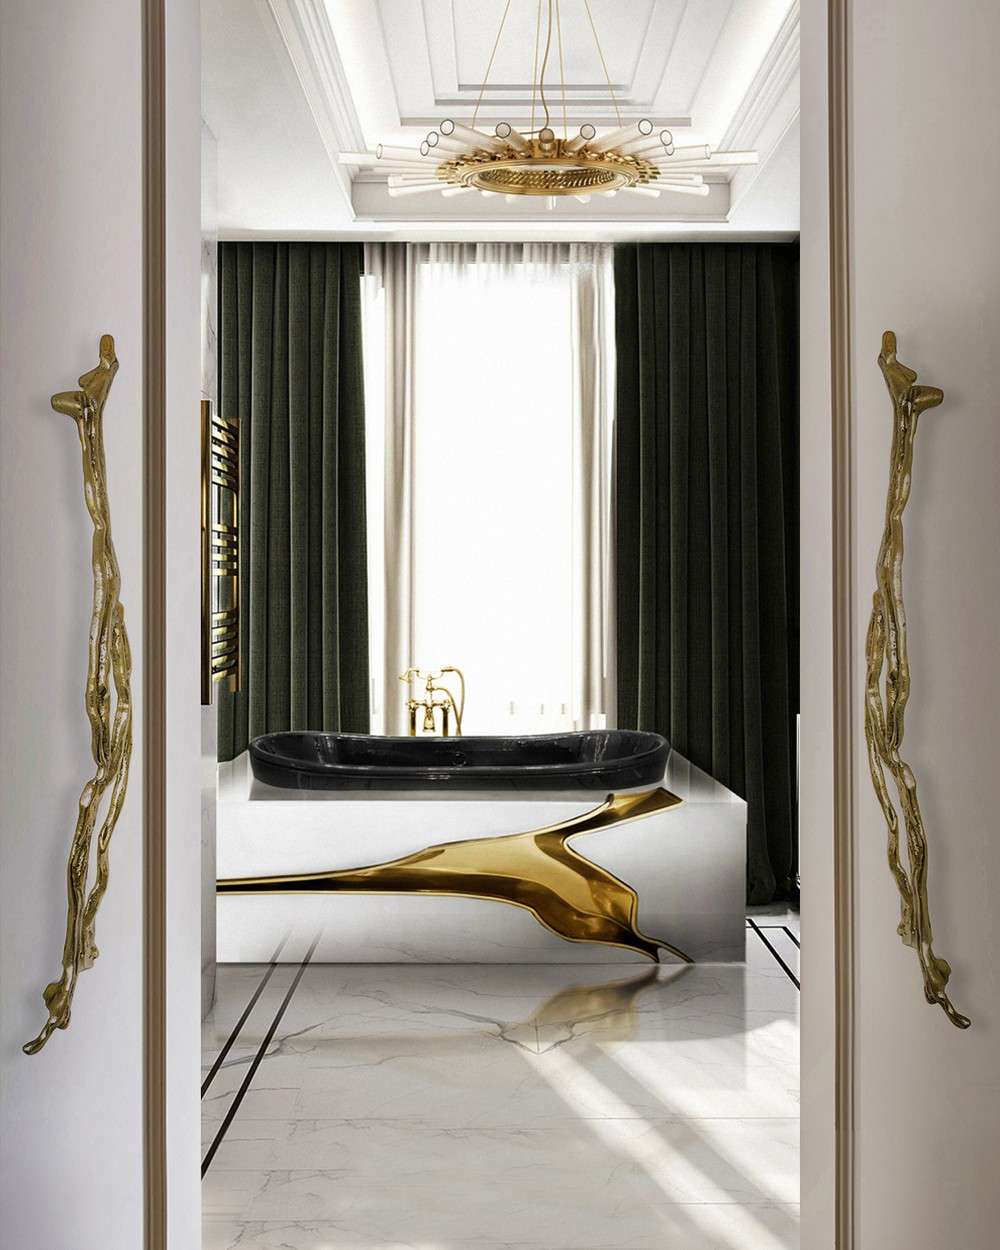 Bathroom Ideas How to Give A Riveting Yet Timeless Vibe to Your Decor 2 bathroom ideas Bathroom Ideas: How to Give A Riveting Yet Timeless Vibe to Your Decor Bathroom Ideas How to Give A Riveting Yet Timeless Vibe to Your Decor 2